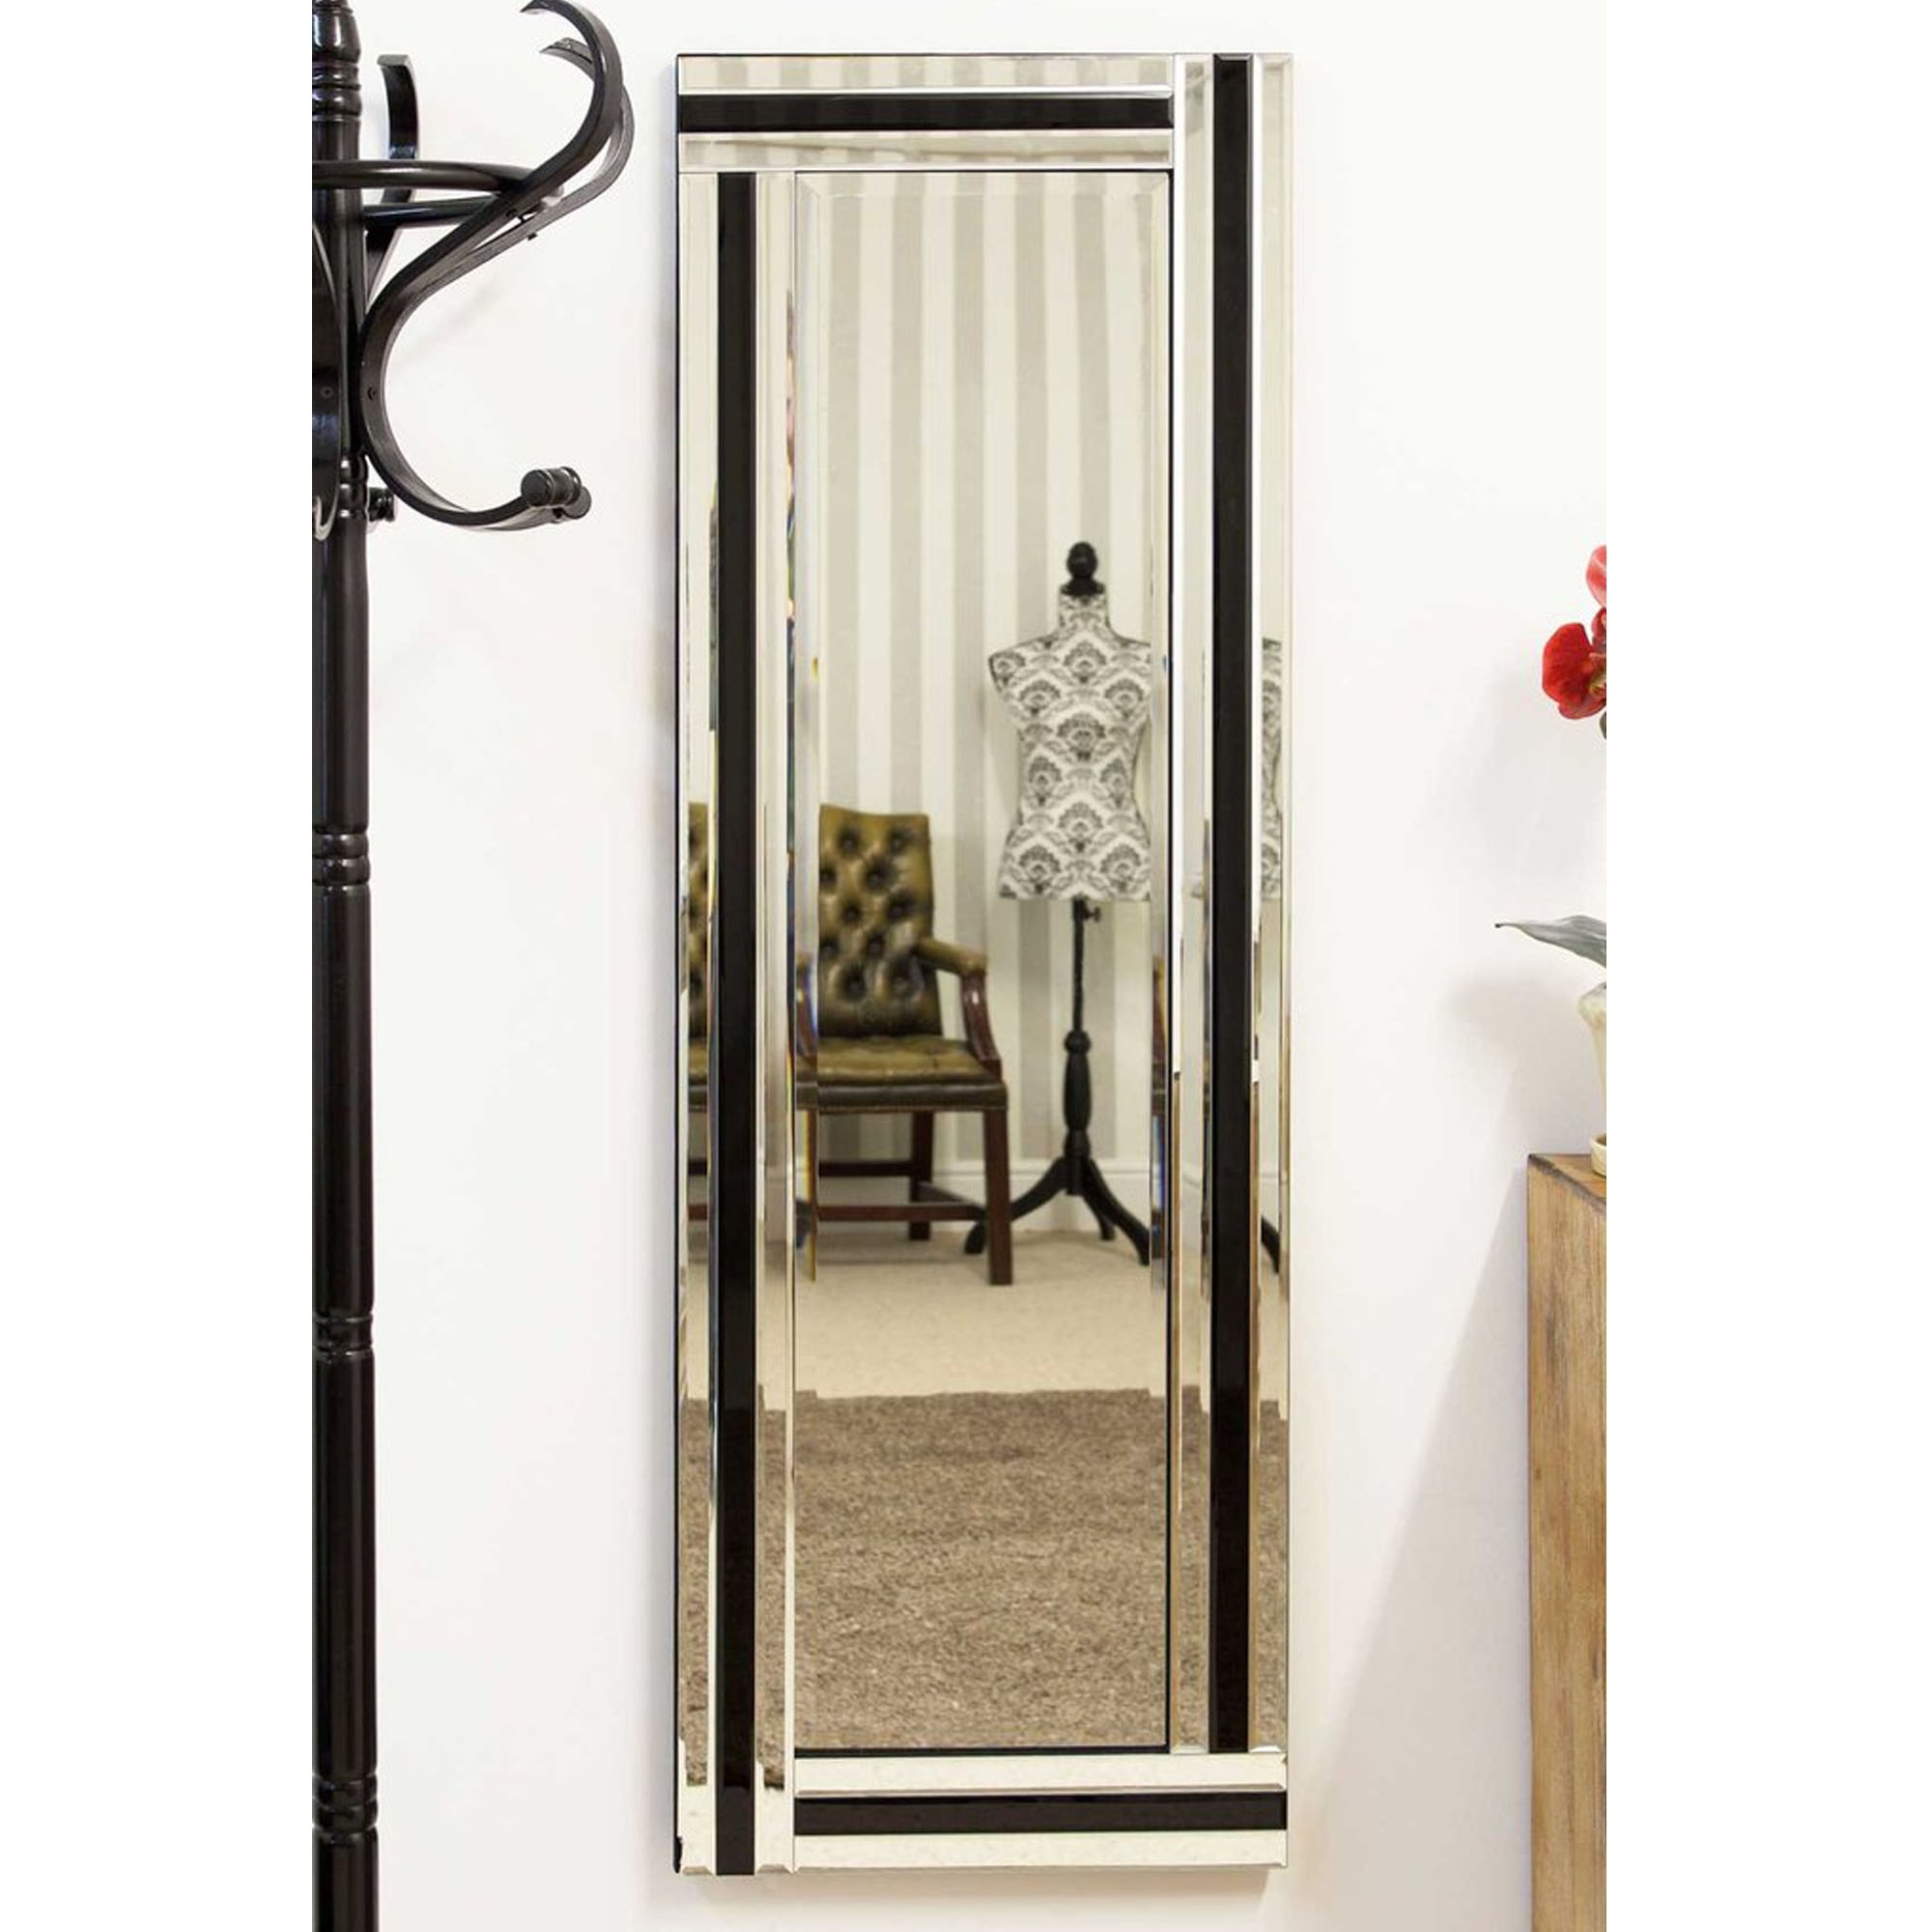 Venetian Thin Silver And Black Rectangular Wall Mirror Throughout Recent Thin Wall Mirrors (View 16 of 20)